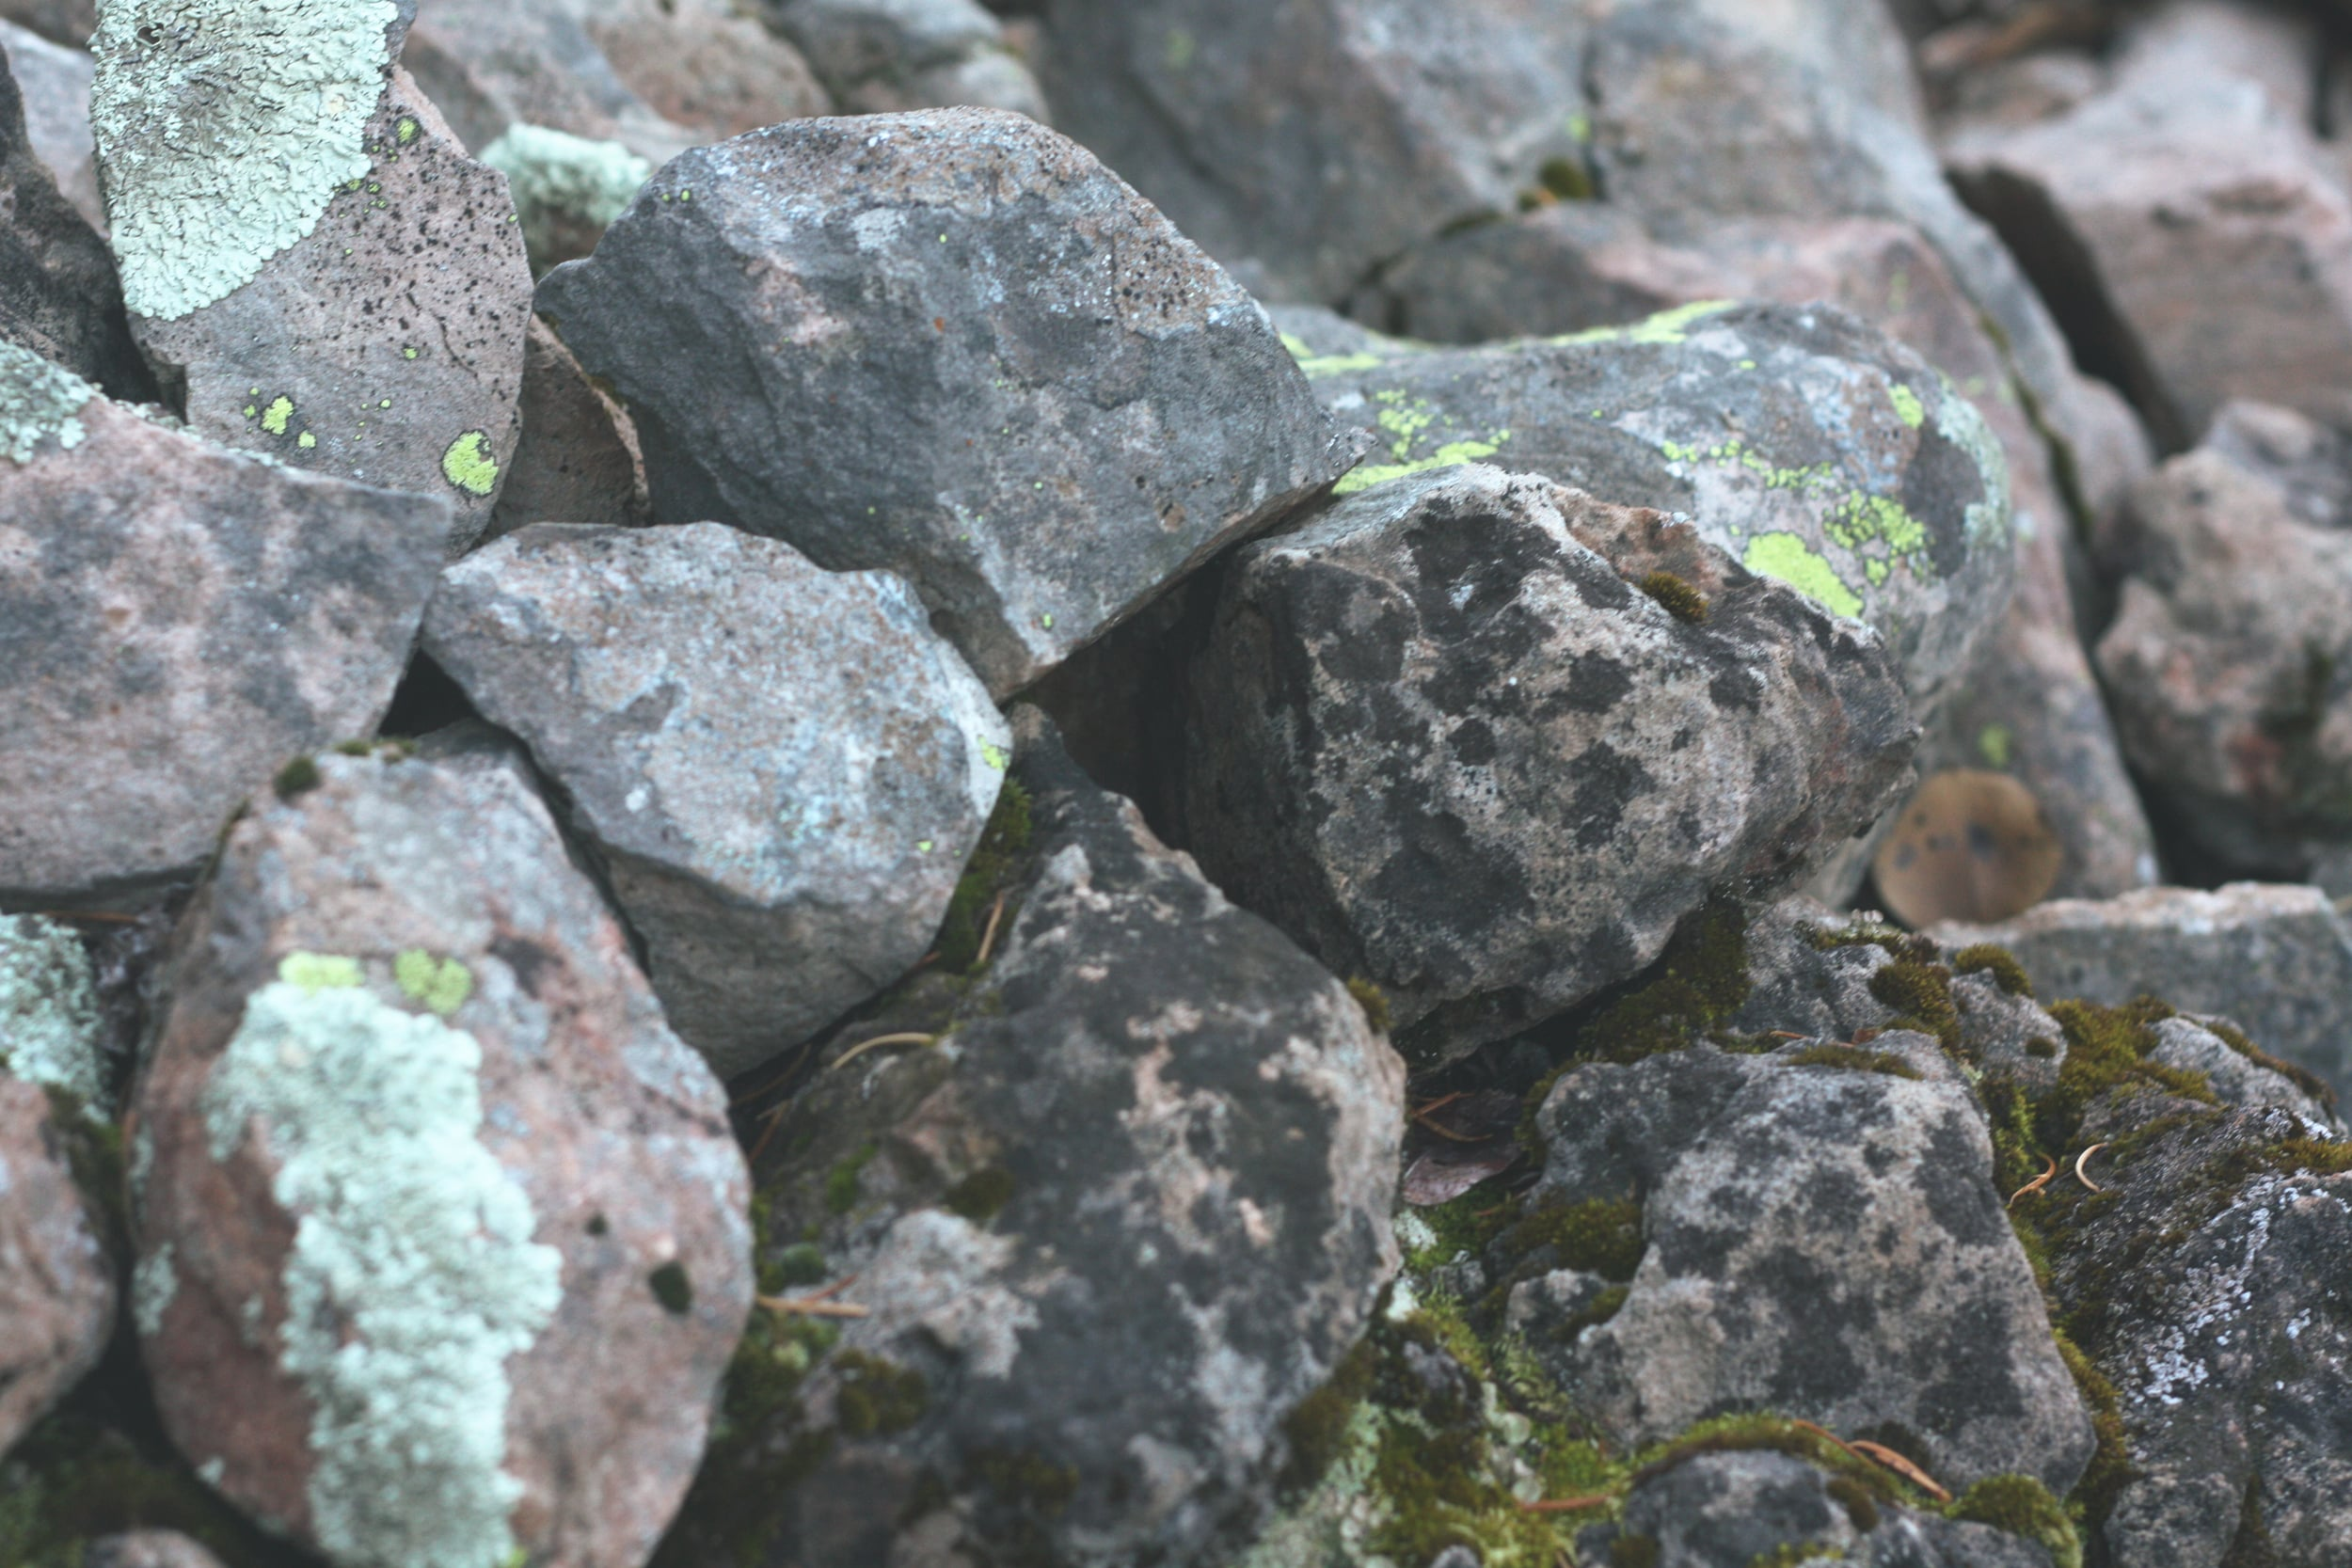 Mossy Covered Stones | Tree talker